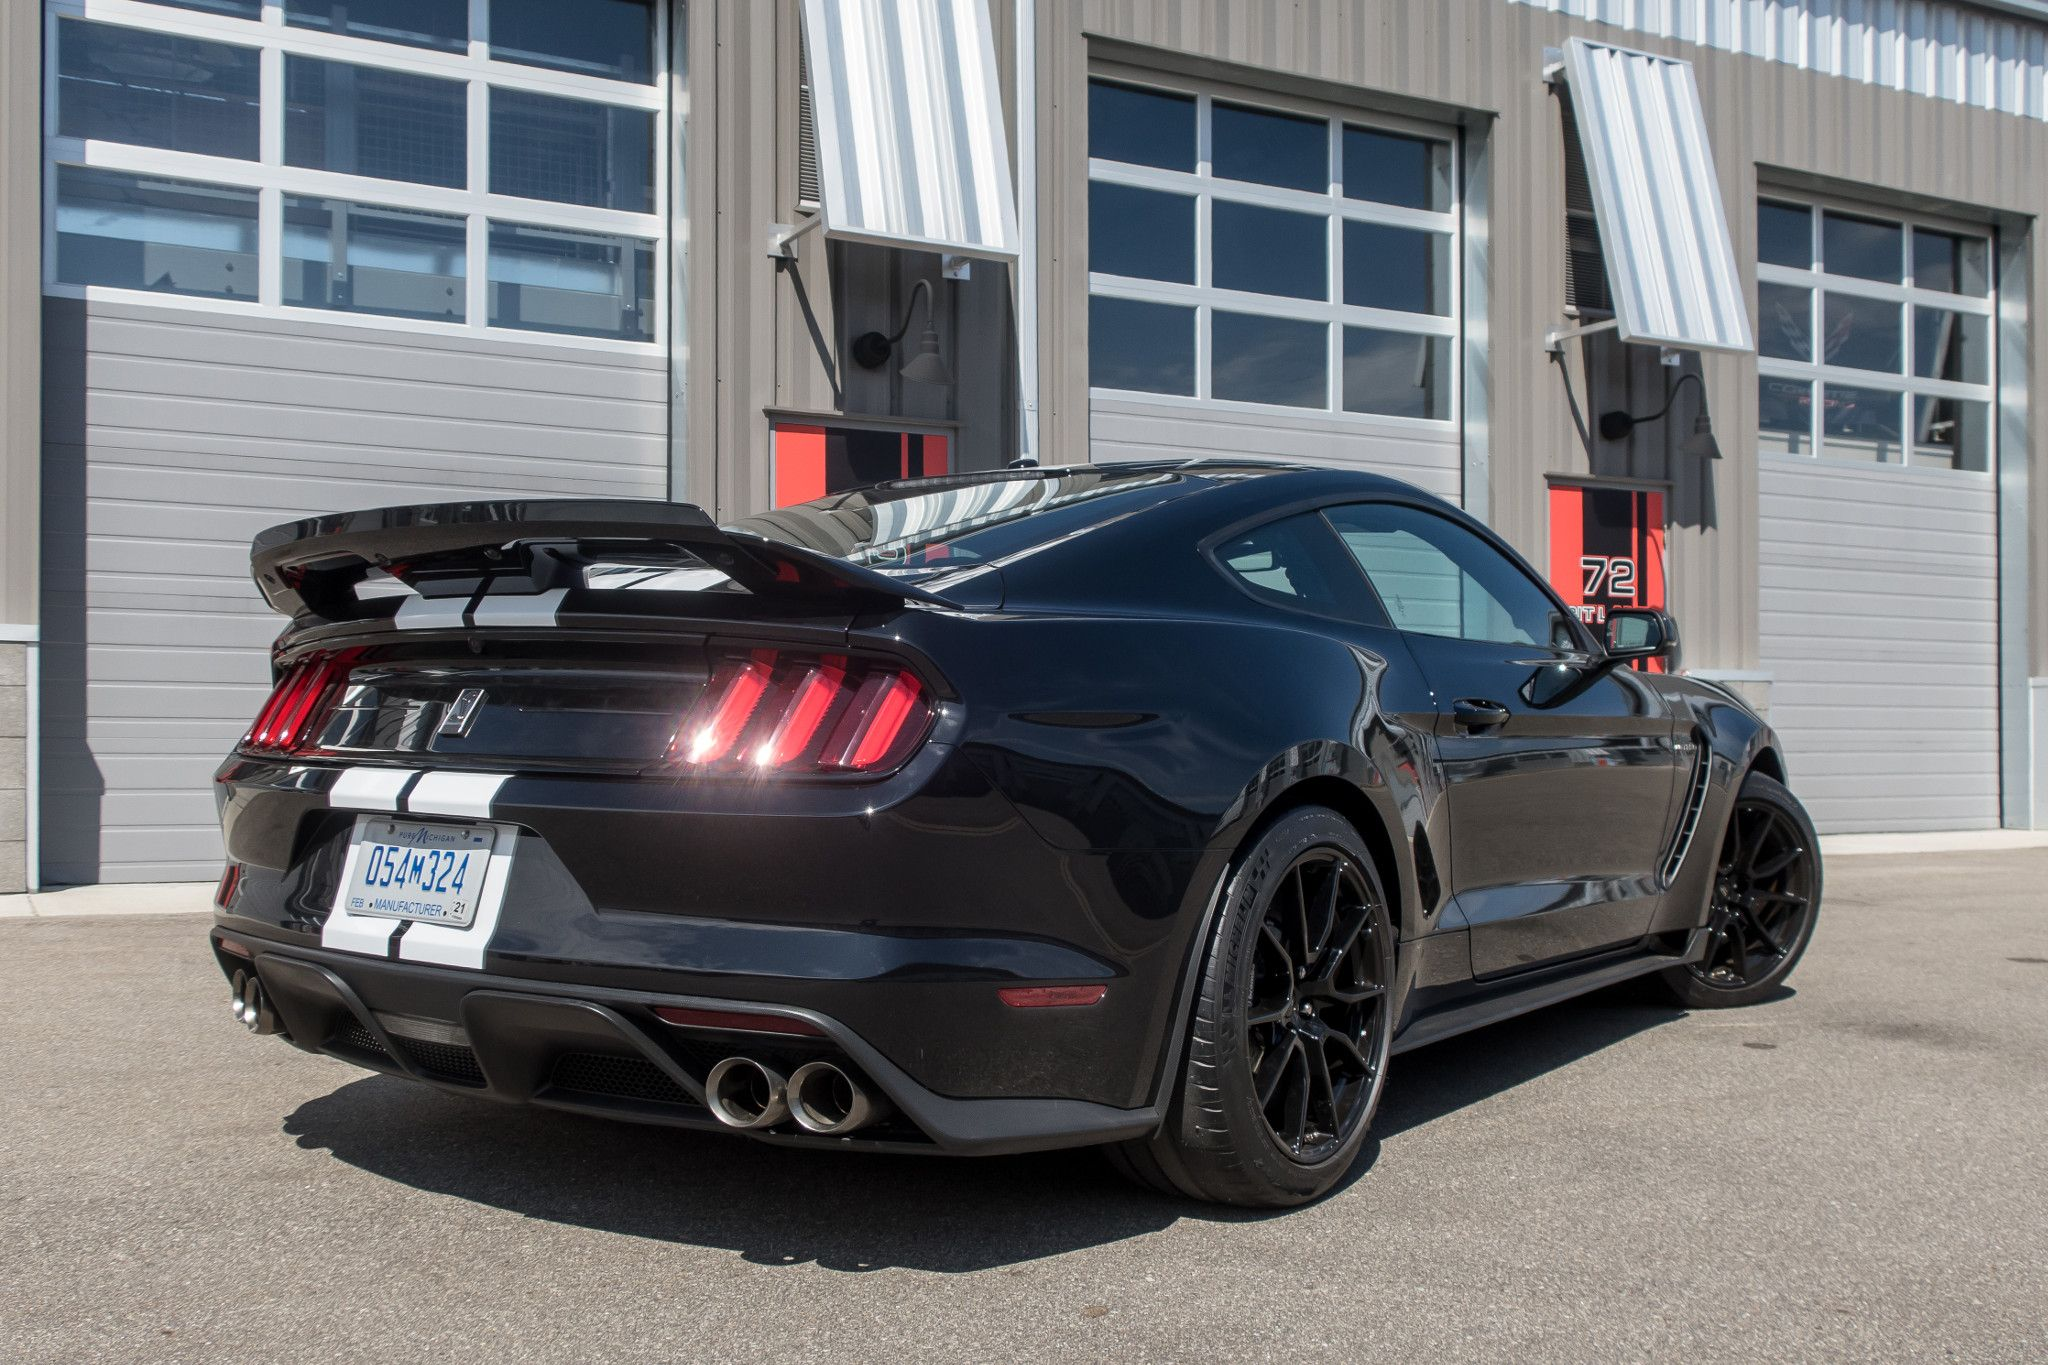 2019 Ford Mustang Shelby Gt350 First Drive Is This The Best Mustang Ever Made News Cars Com Mustang Shelby Ford Mustang Shelby Ford Mustang